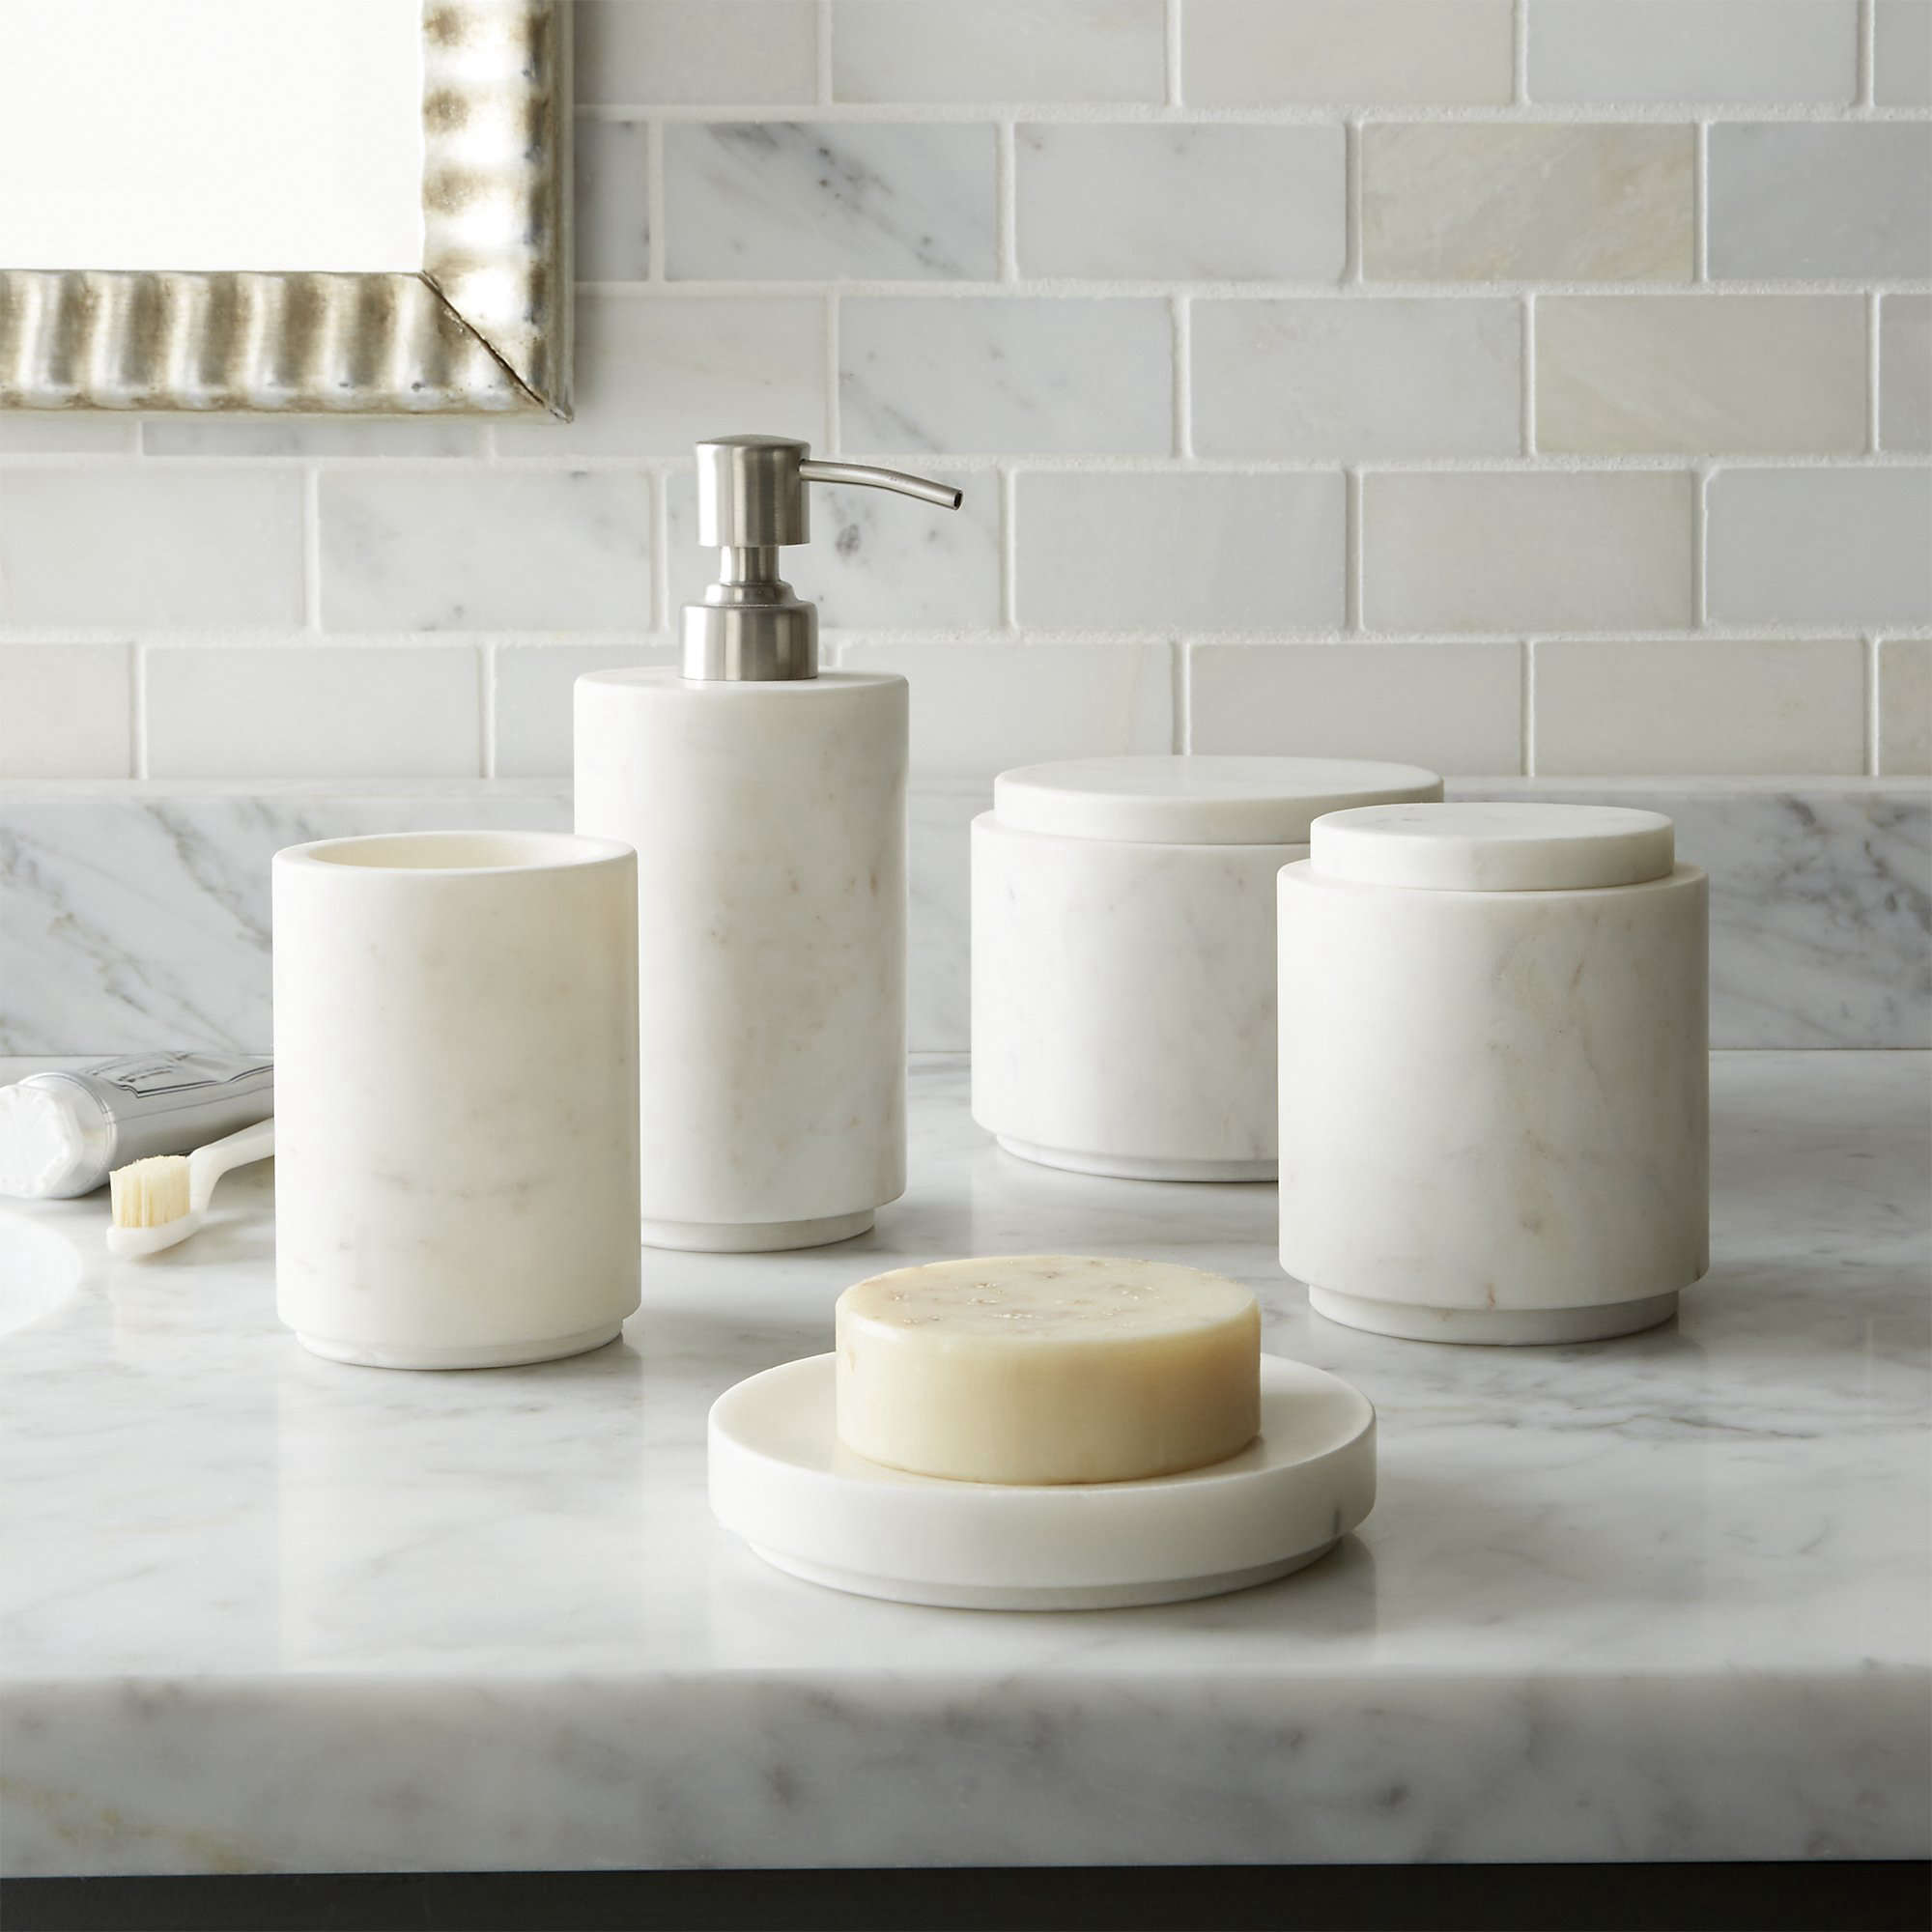 graydon-bath-accessories-crate-barrel-remodelista